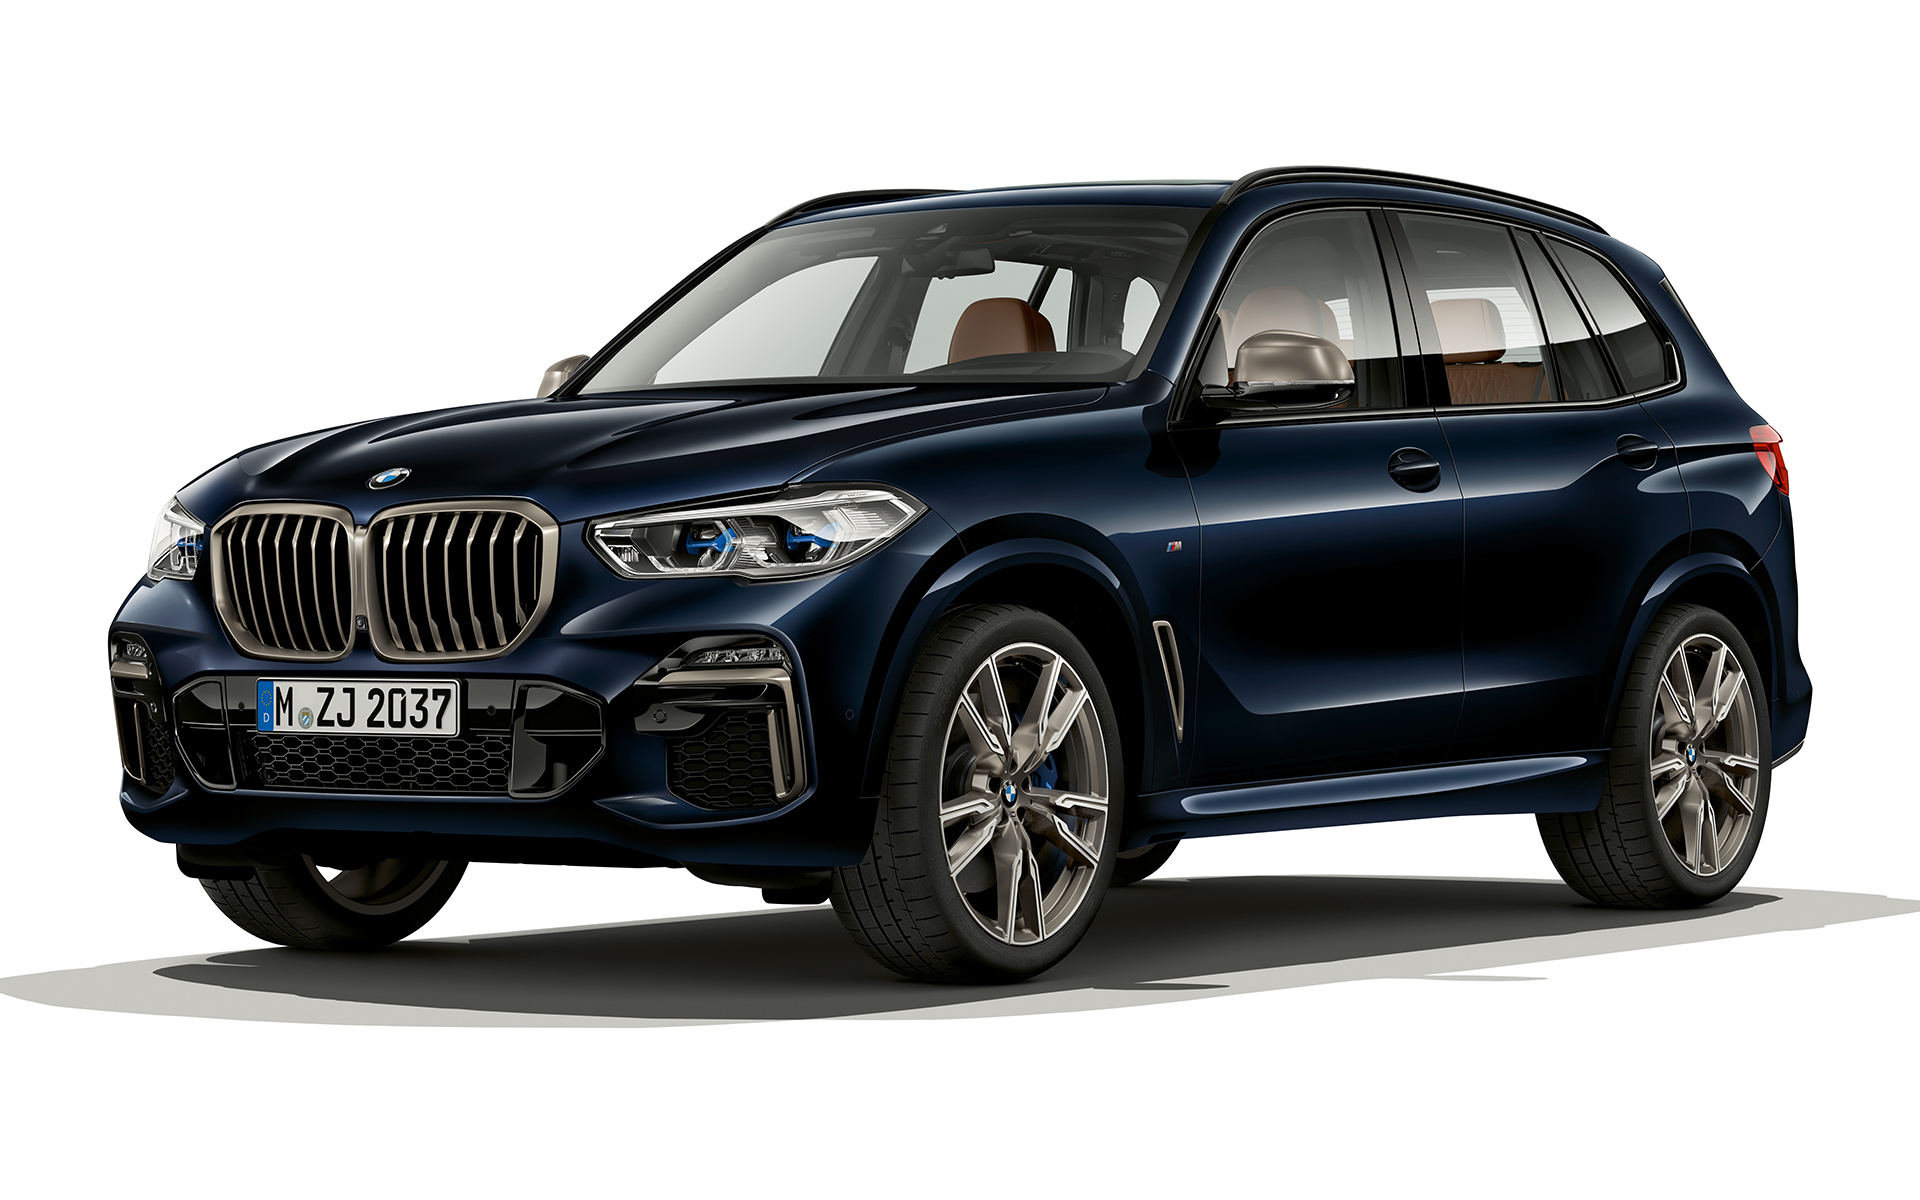 bmw x5 auf einen blick. Black Bedroom Furniture Sets. Home Design Ideas